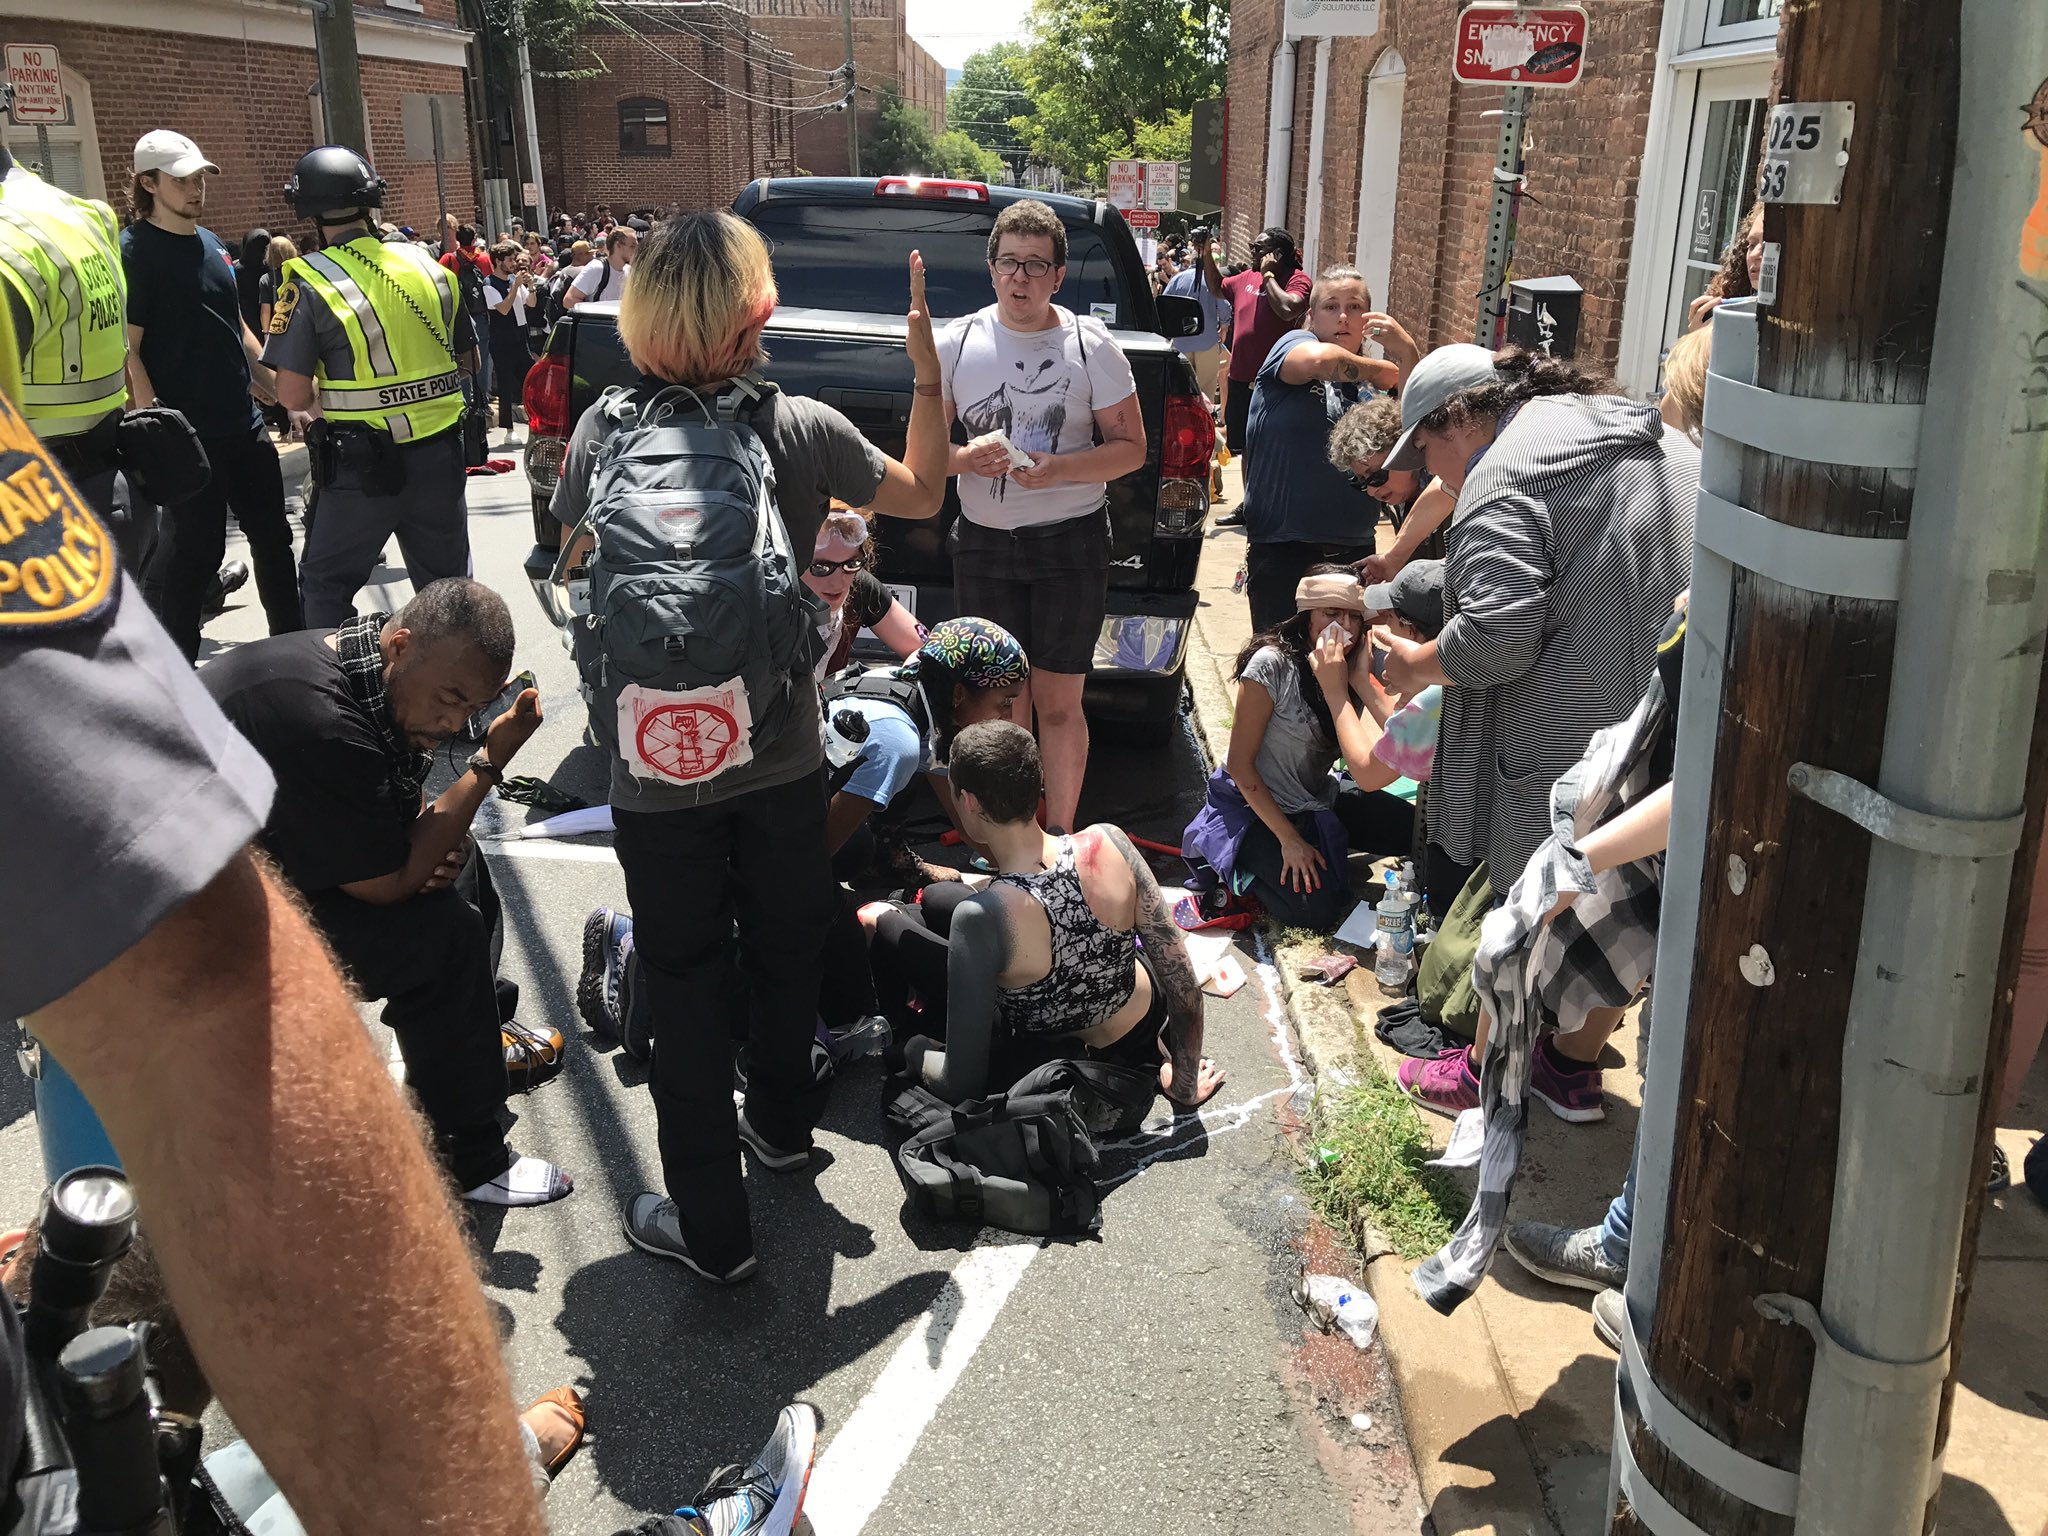 BREAKING: Several people hit by car in #Charlottesville. Multiple injuries. #altright #unitethe right @CBSNews https://t.co/47Yya6i2HT